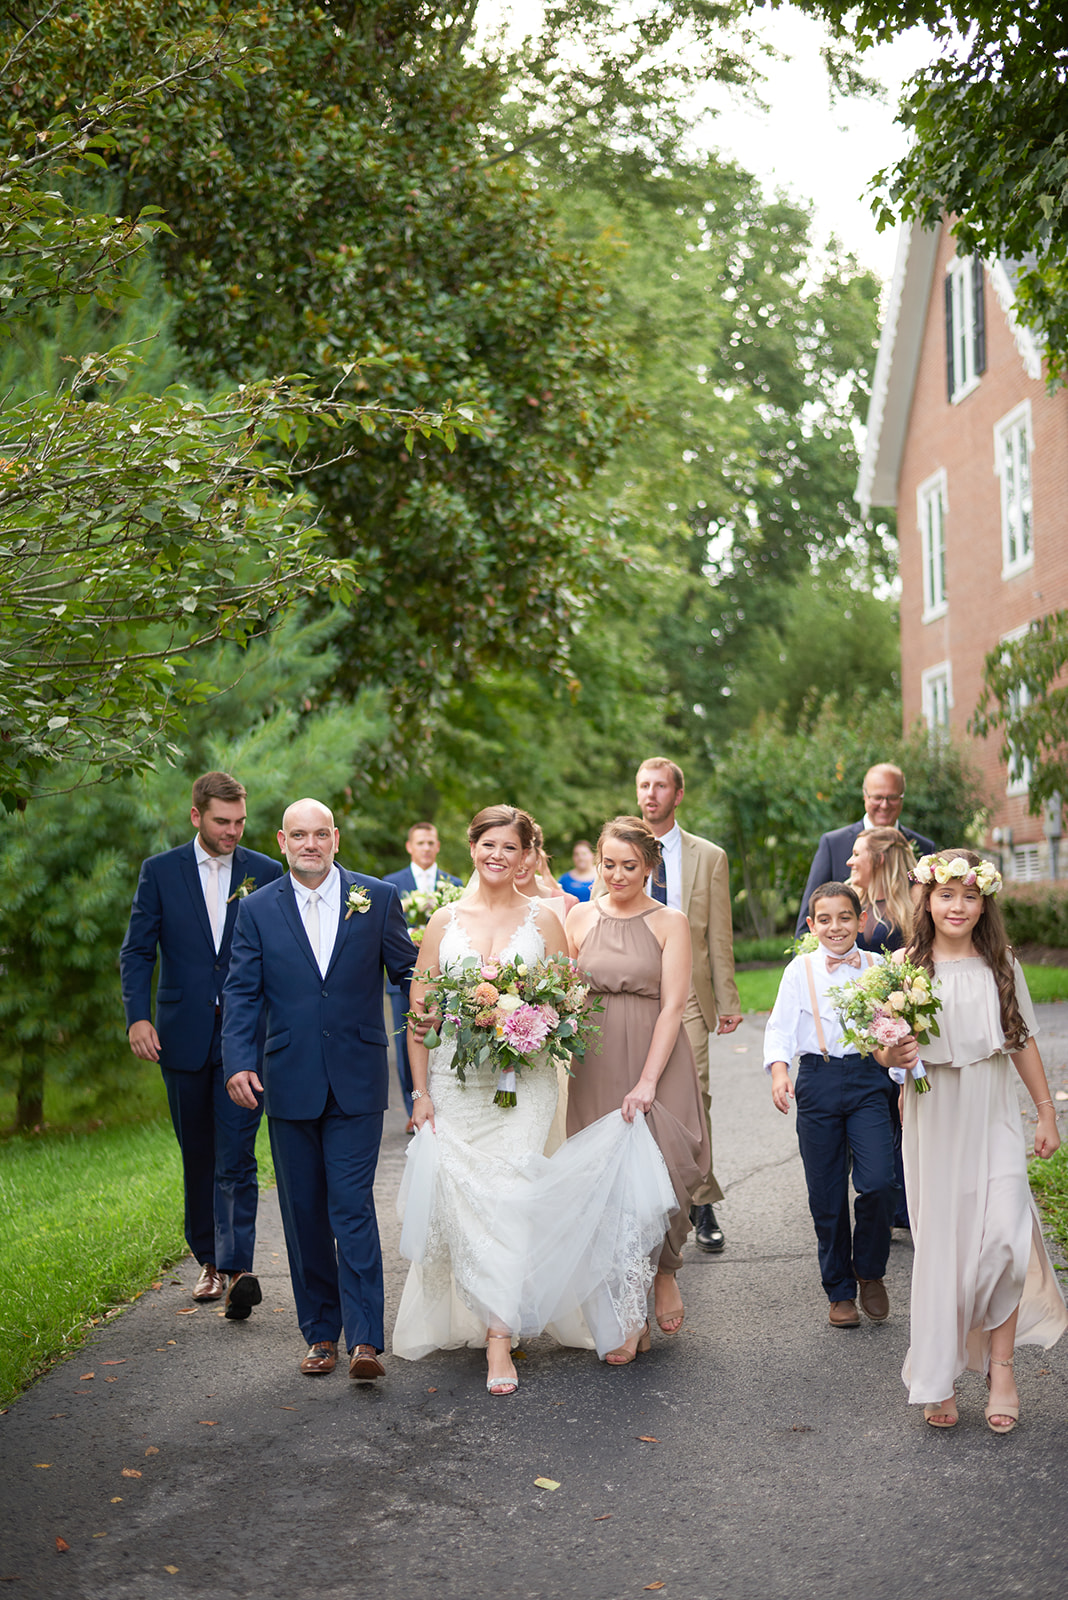 Wedding party at southern glam barn wedding